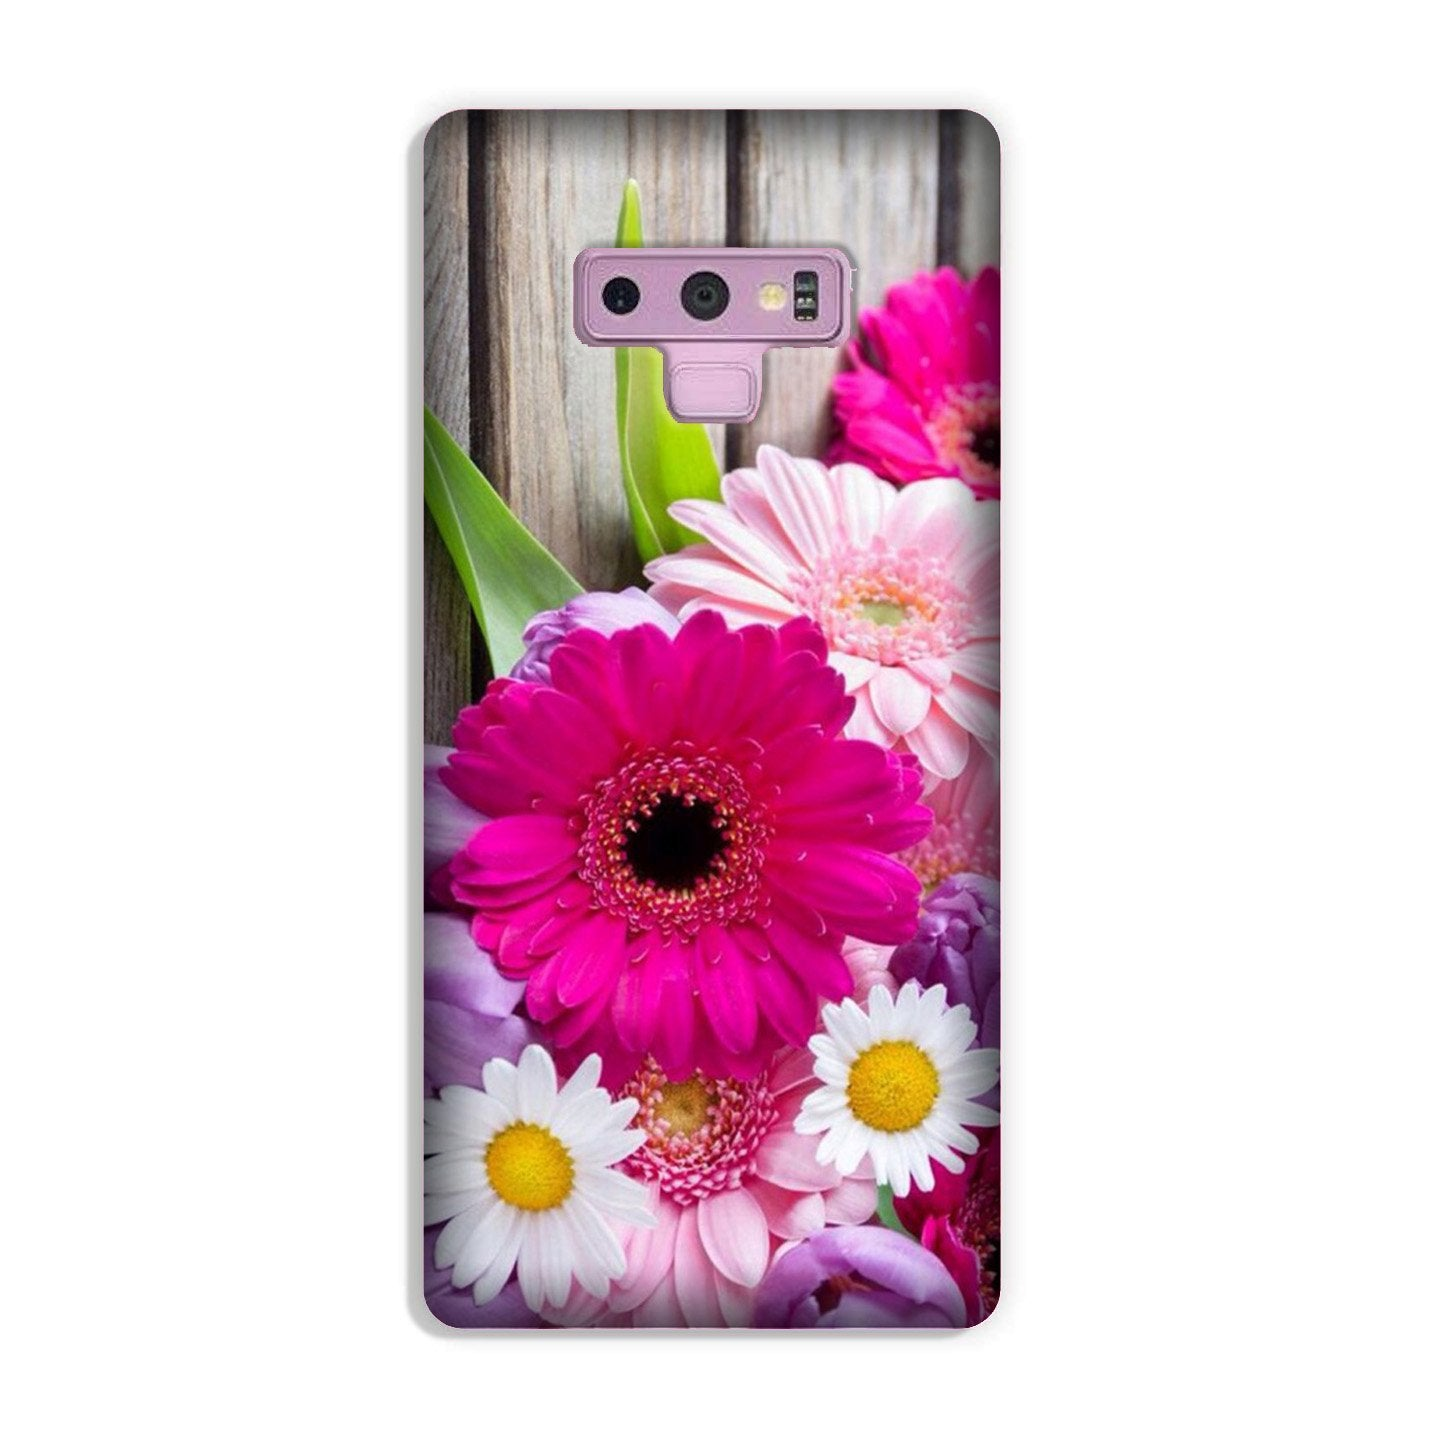 Coloful Daisy2 Case for Galaxy Note 9